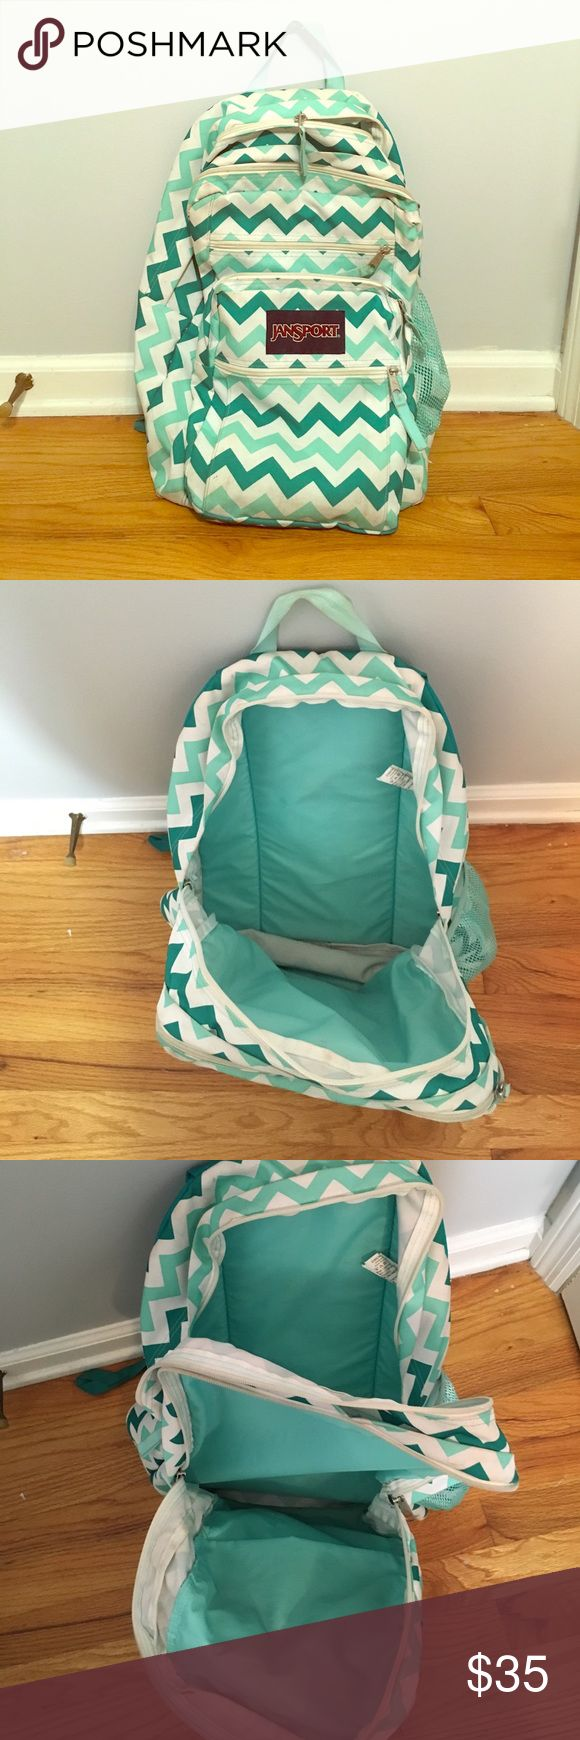 Chevron backpack This teal and white chevron backpack has 5 pockets and 2 of them can hold all the big books and binders you have to carry for class Jansport Bags Backpacks